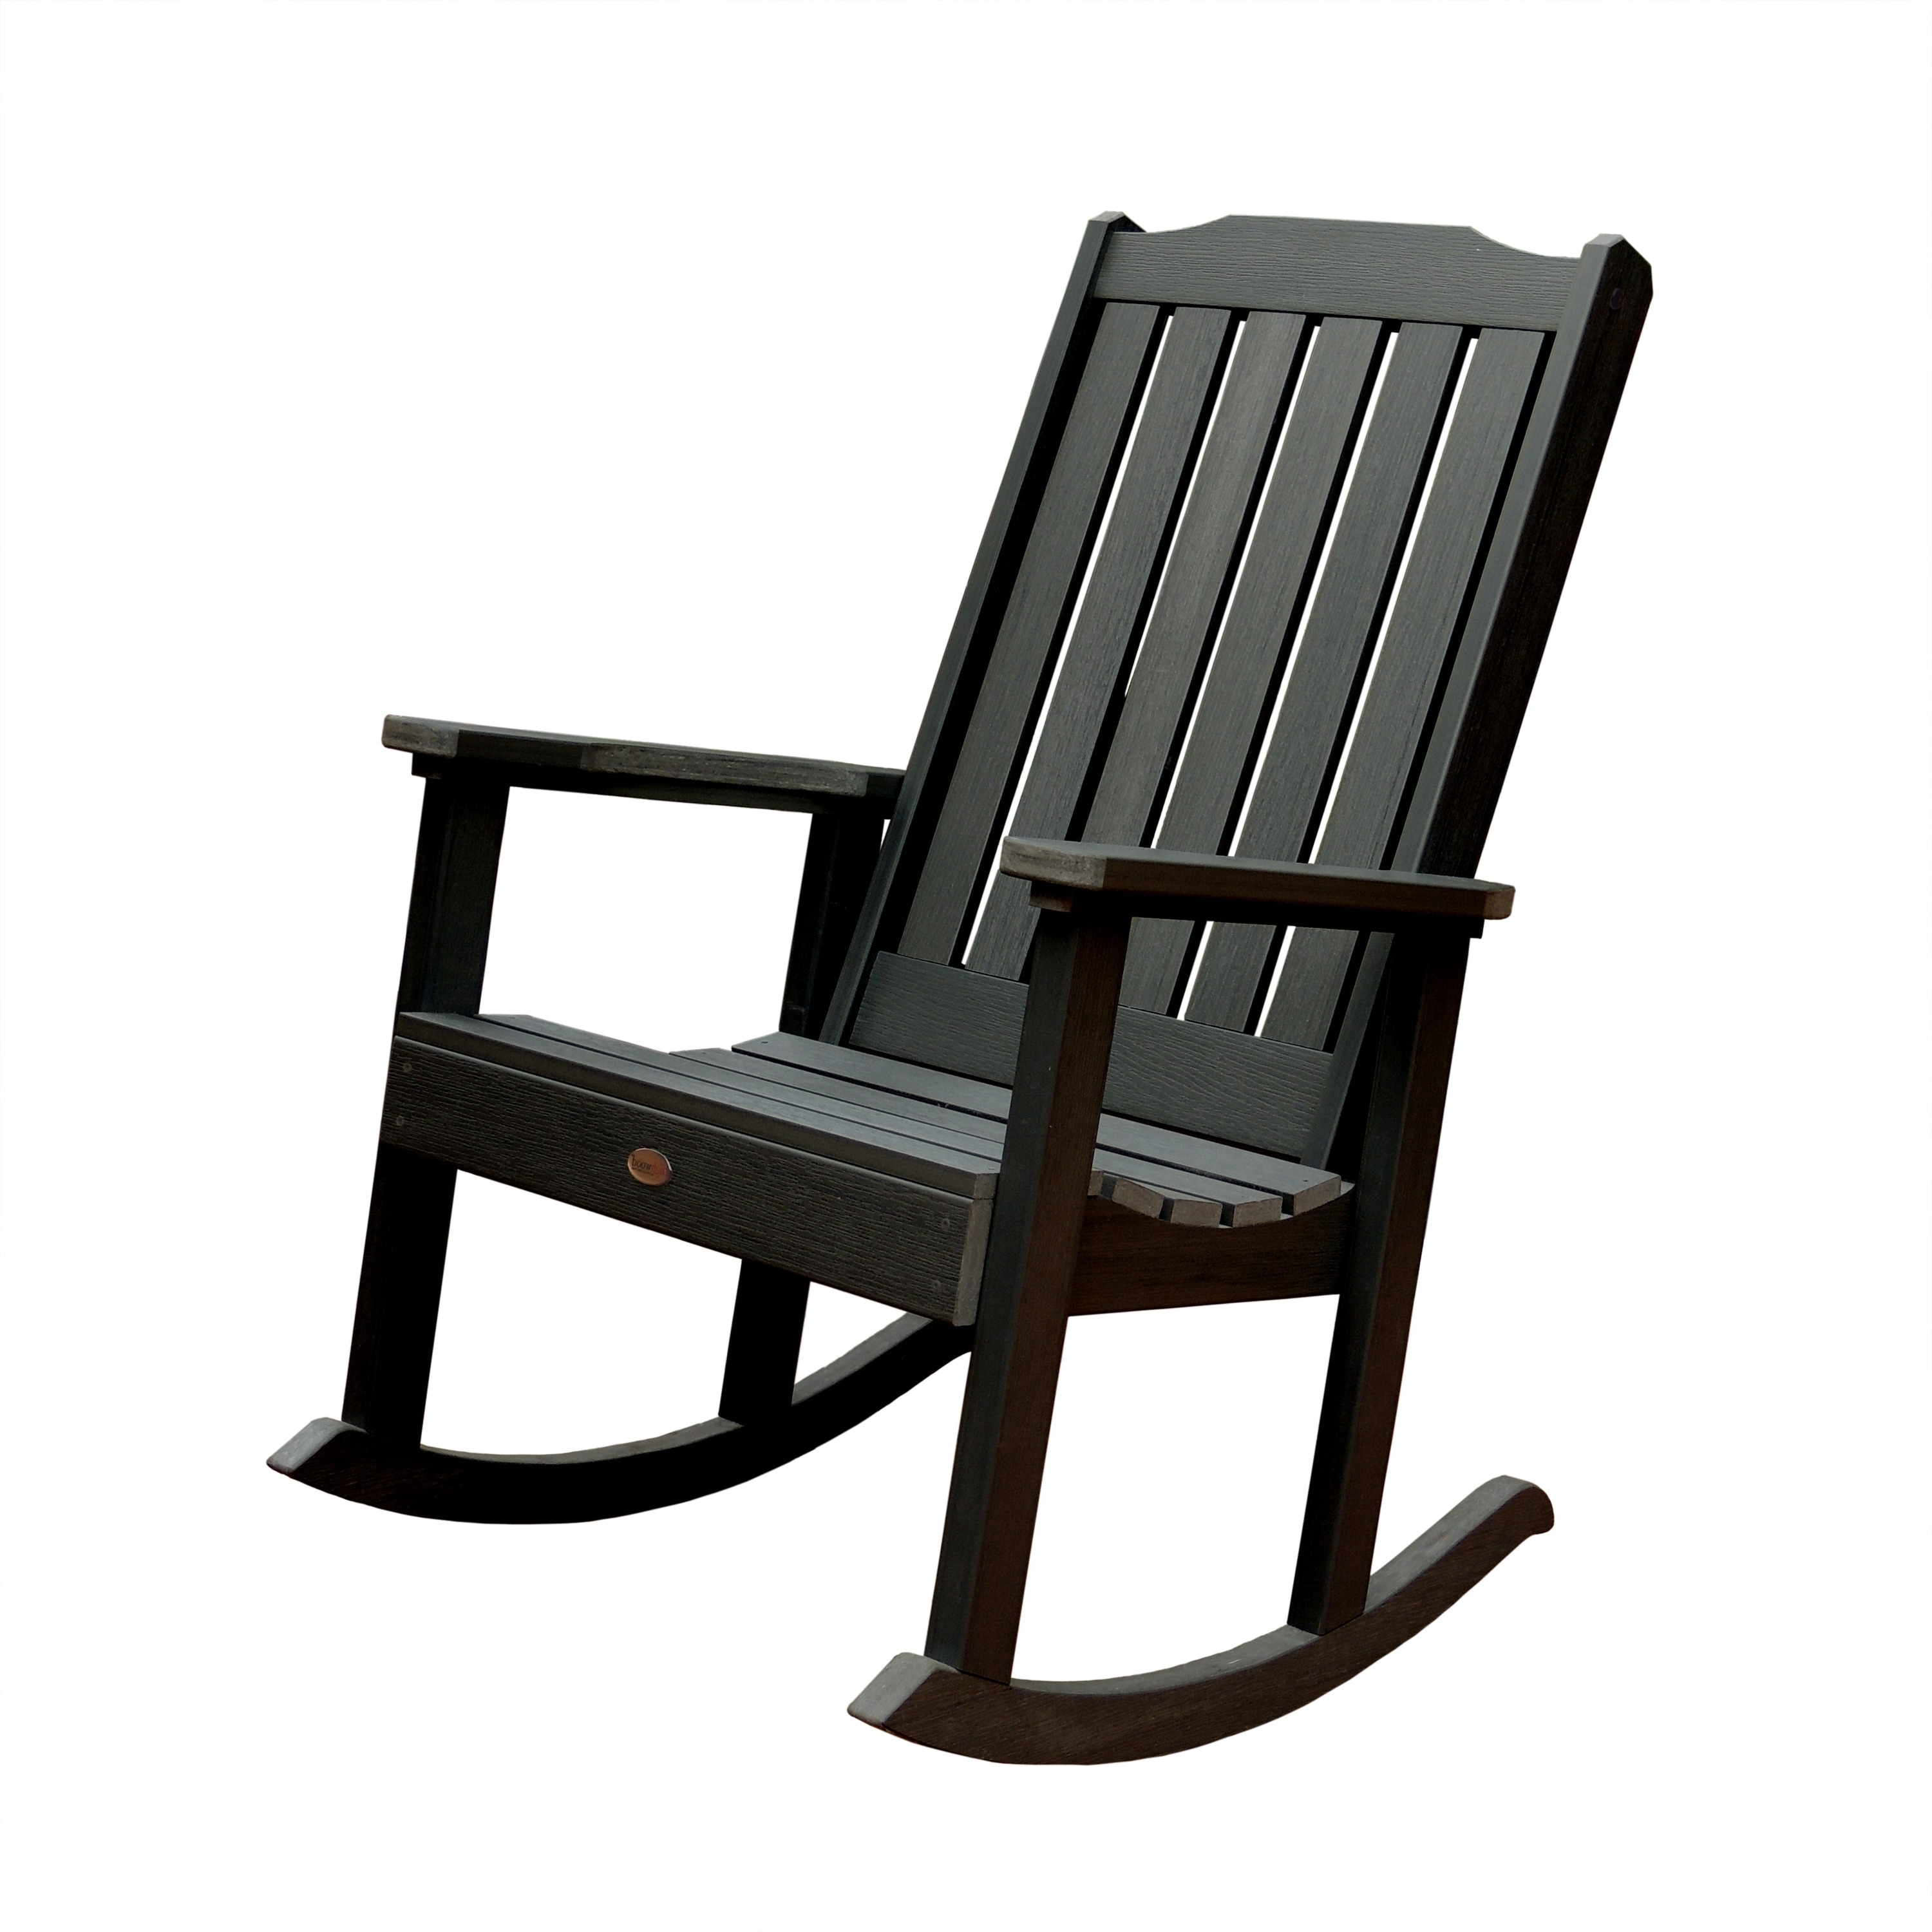 Oversized Patio Rocking Chairs Throughout Best And Newest Shop Highwood Eco Friendly Synthetic Wood Lehigh Rocking Chair (View 14 of 20)